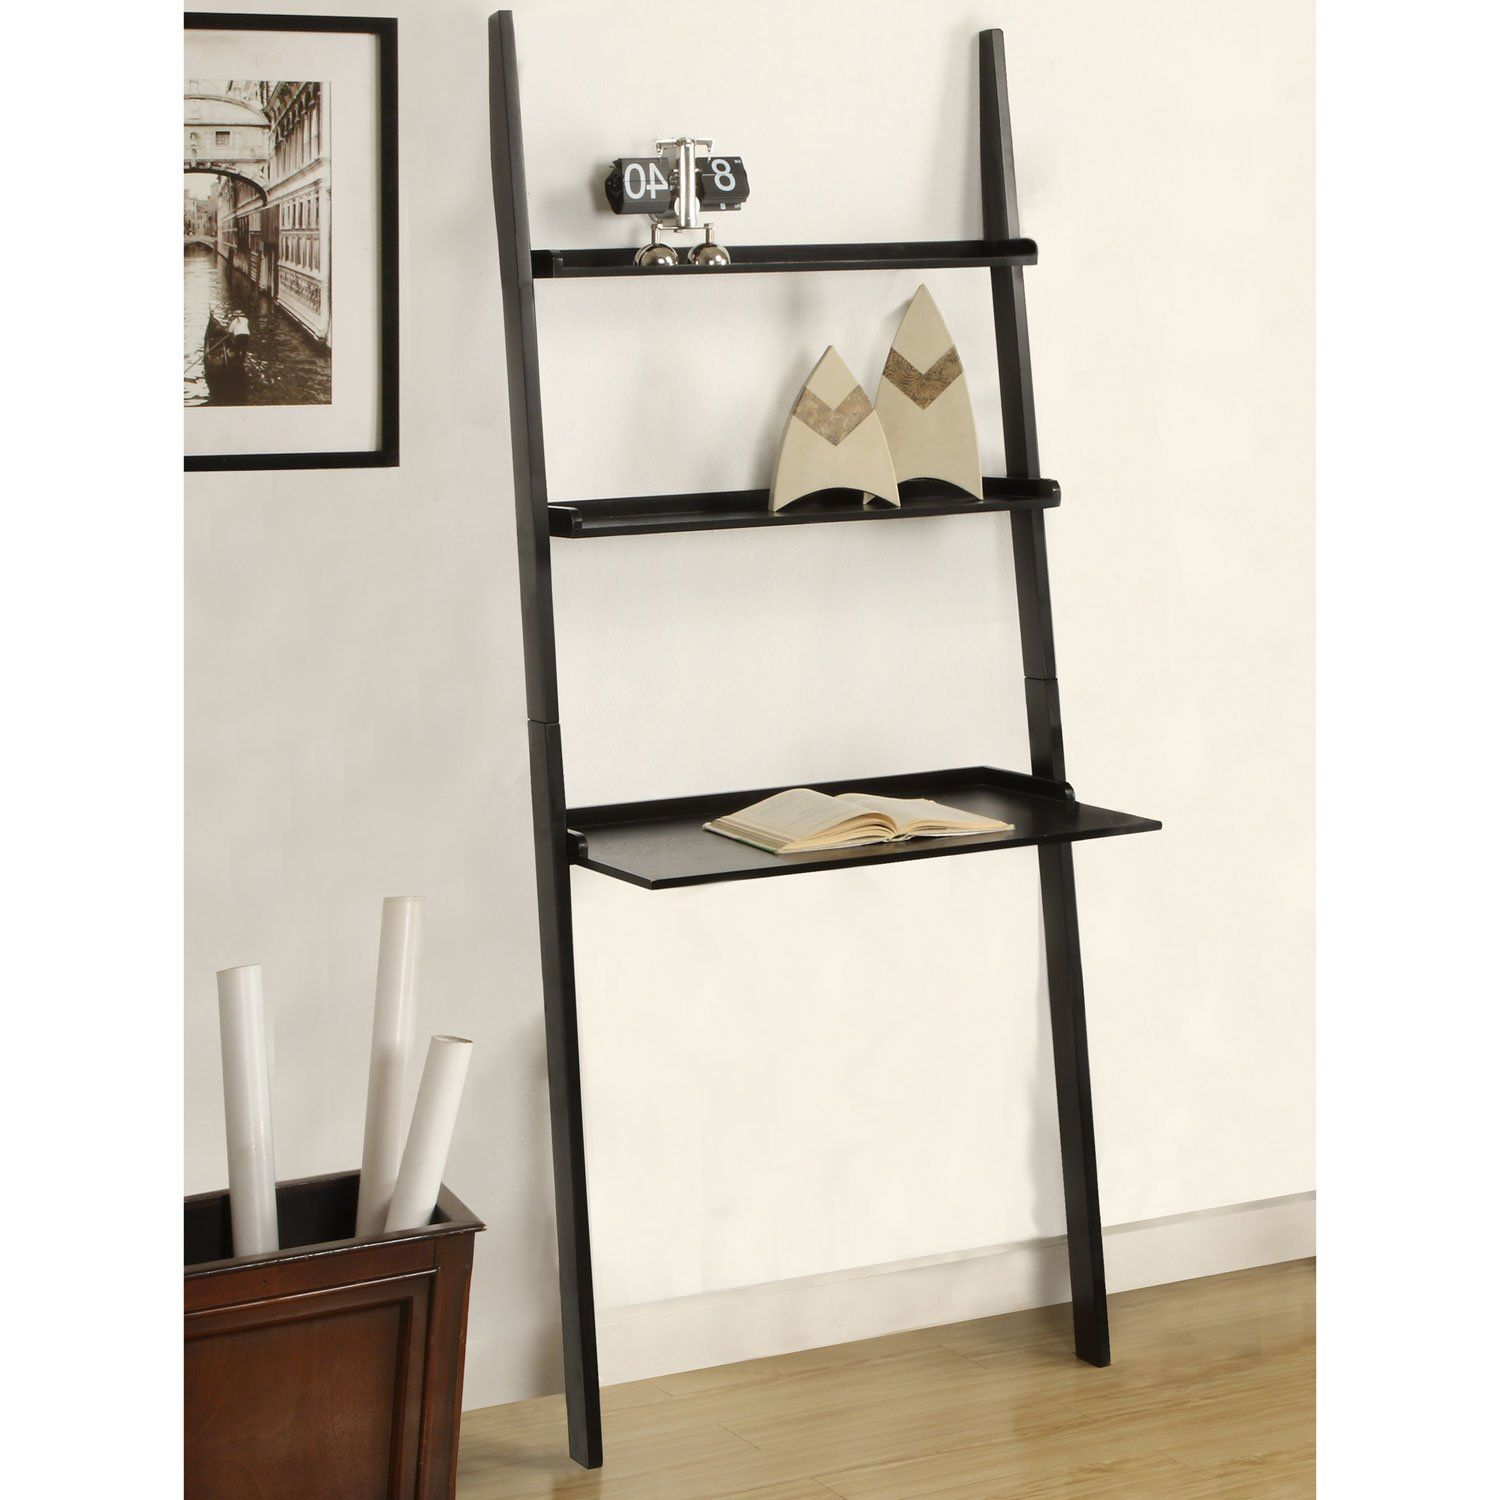 Leaning Shelf Desk Ikea Easy Craft Ideas